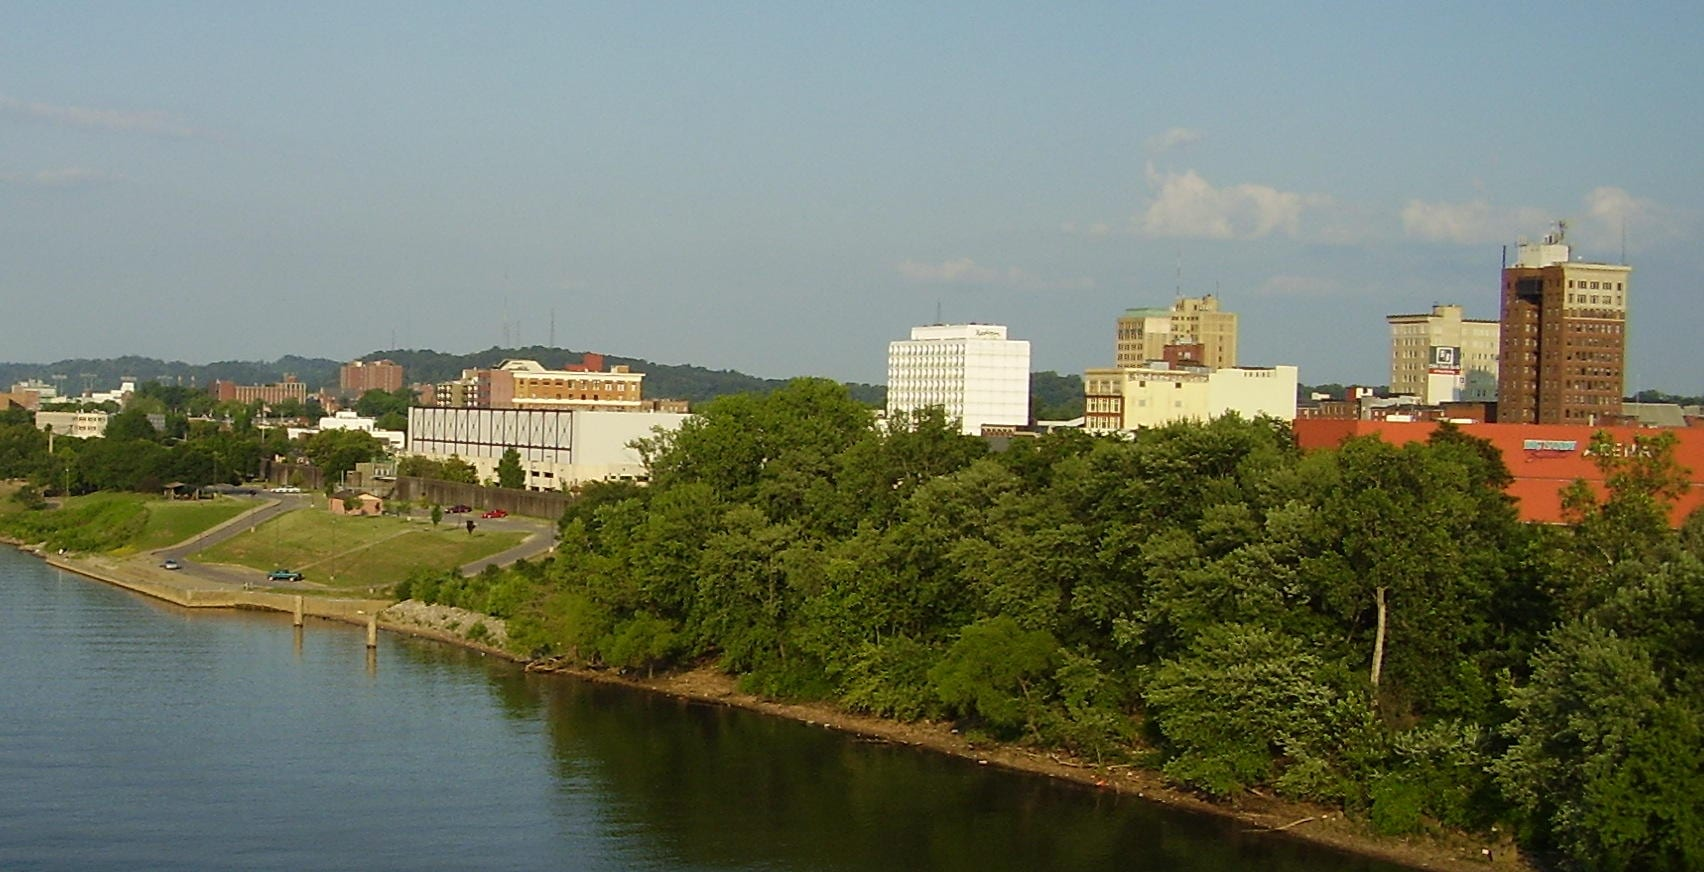 Skyline and trees of Huntington West Virginia as seen from the river